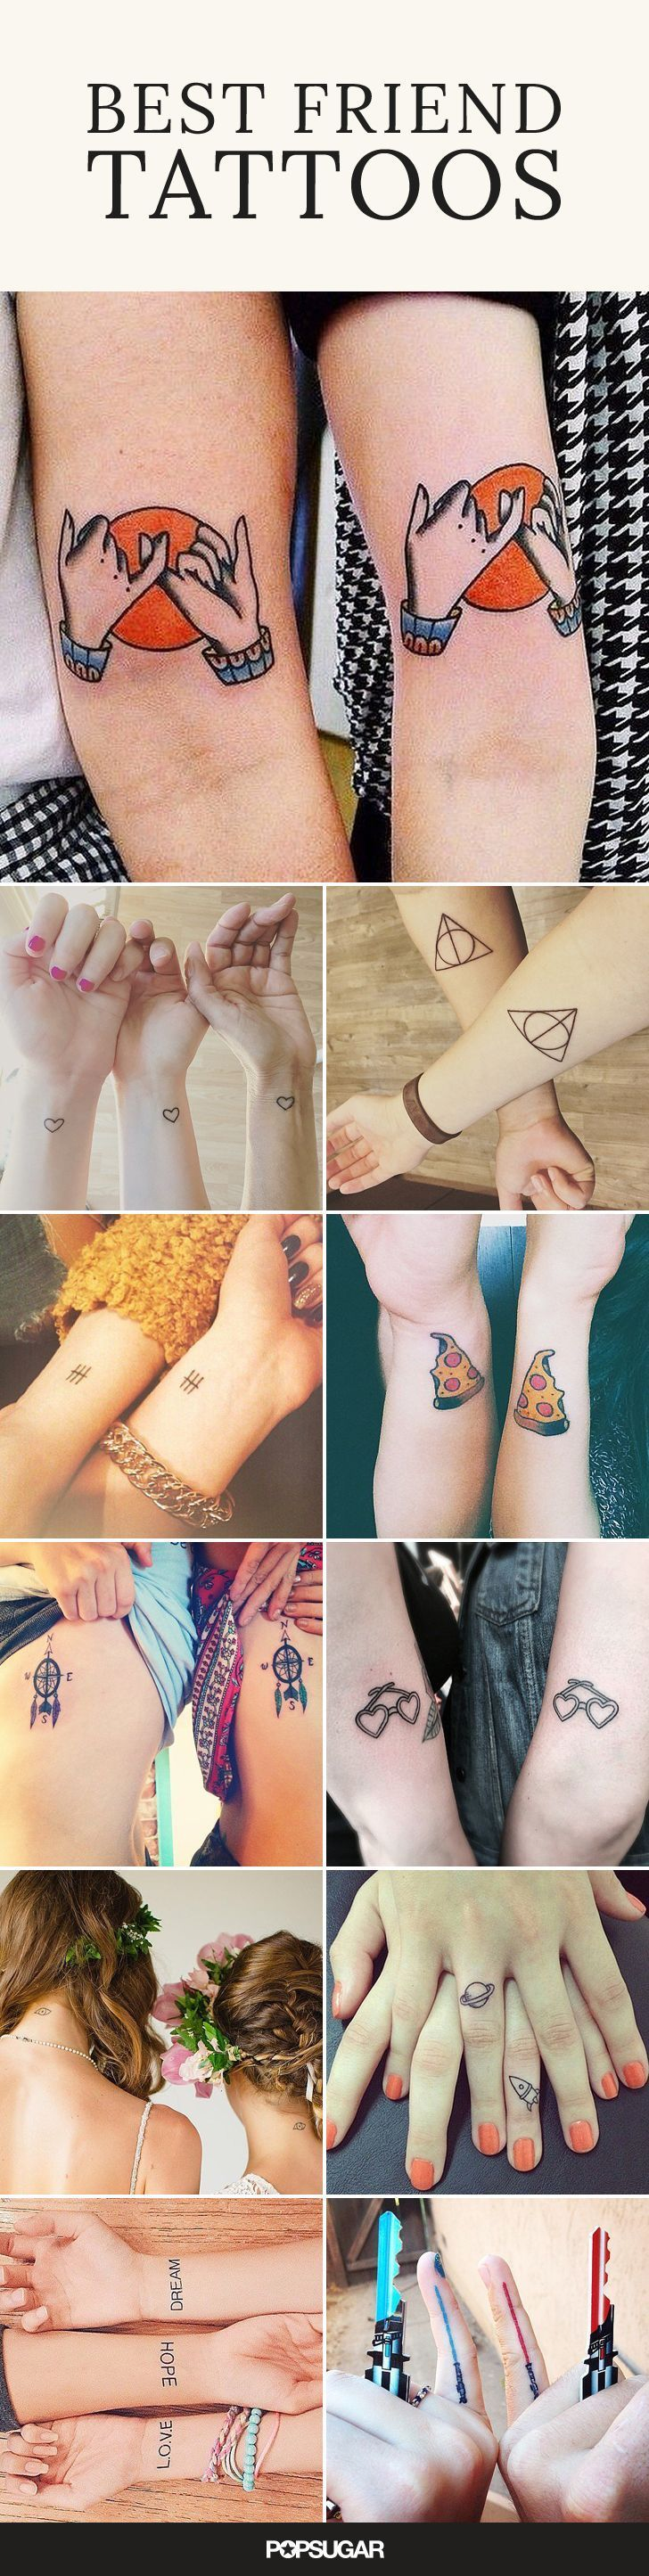 If your best friend is a real BFF, she'll make it permanent and get inked with you.  We scoured the web to find the best tattoos between friends for you to use as an inspirational guide.